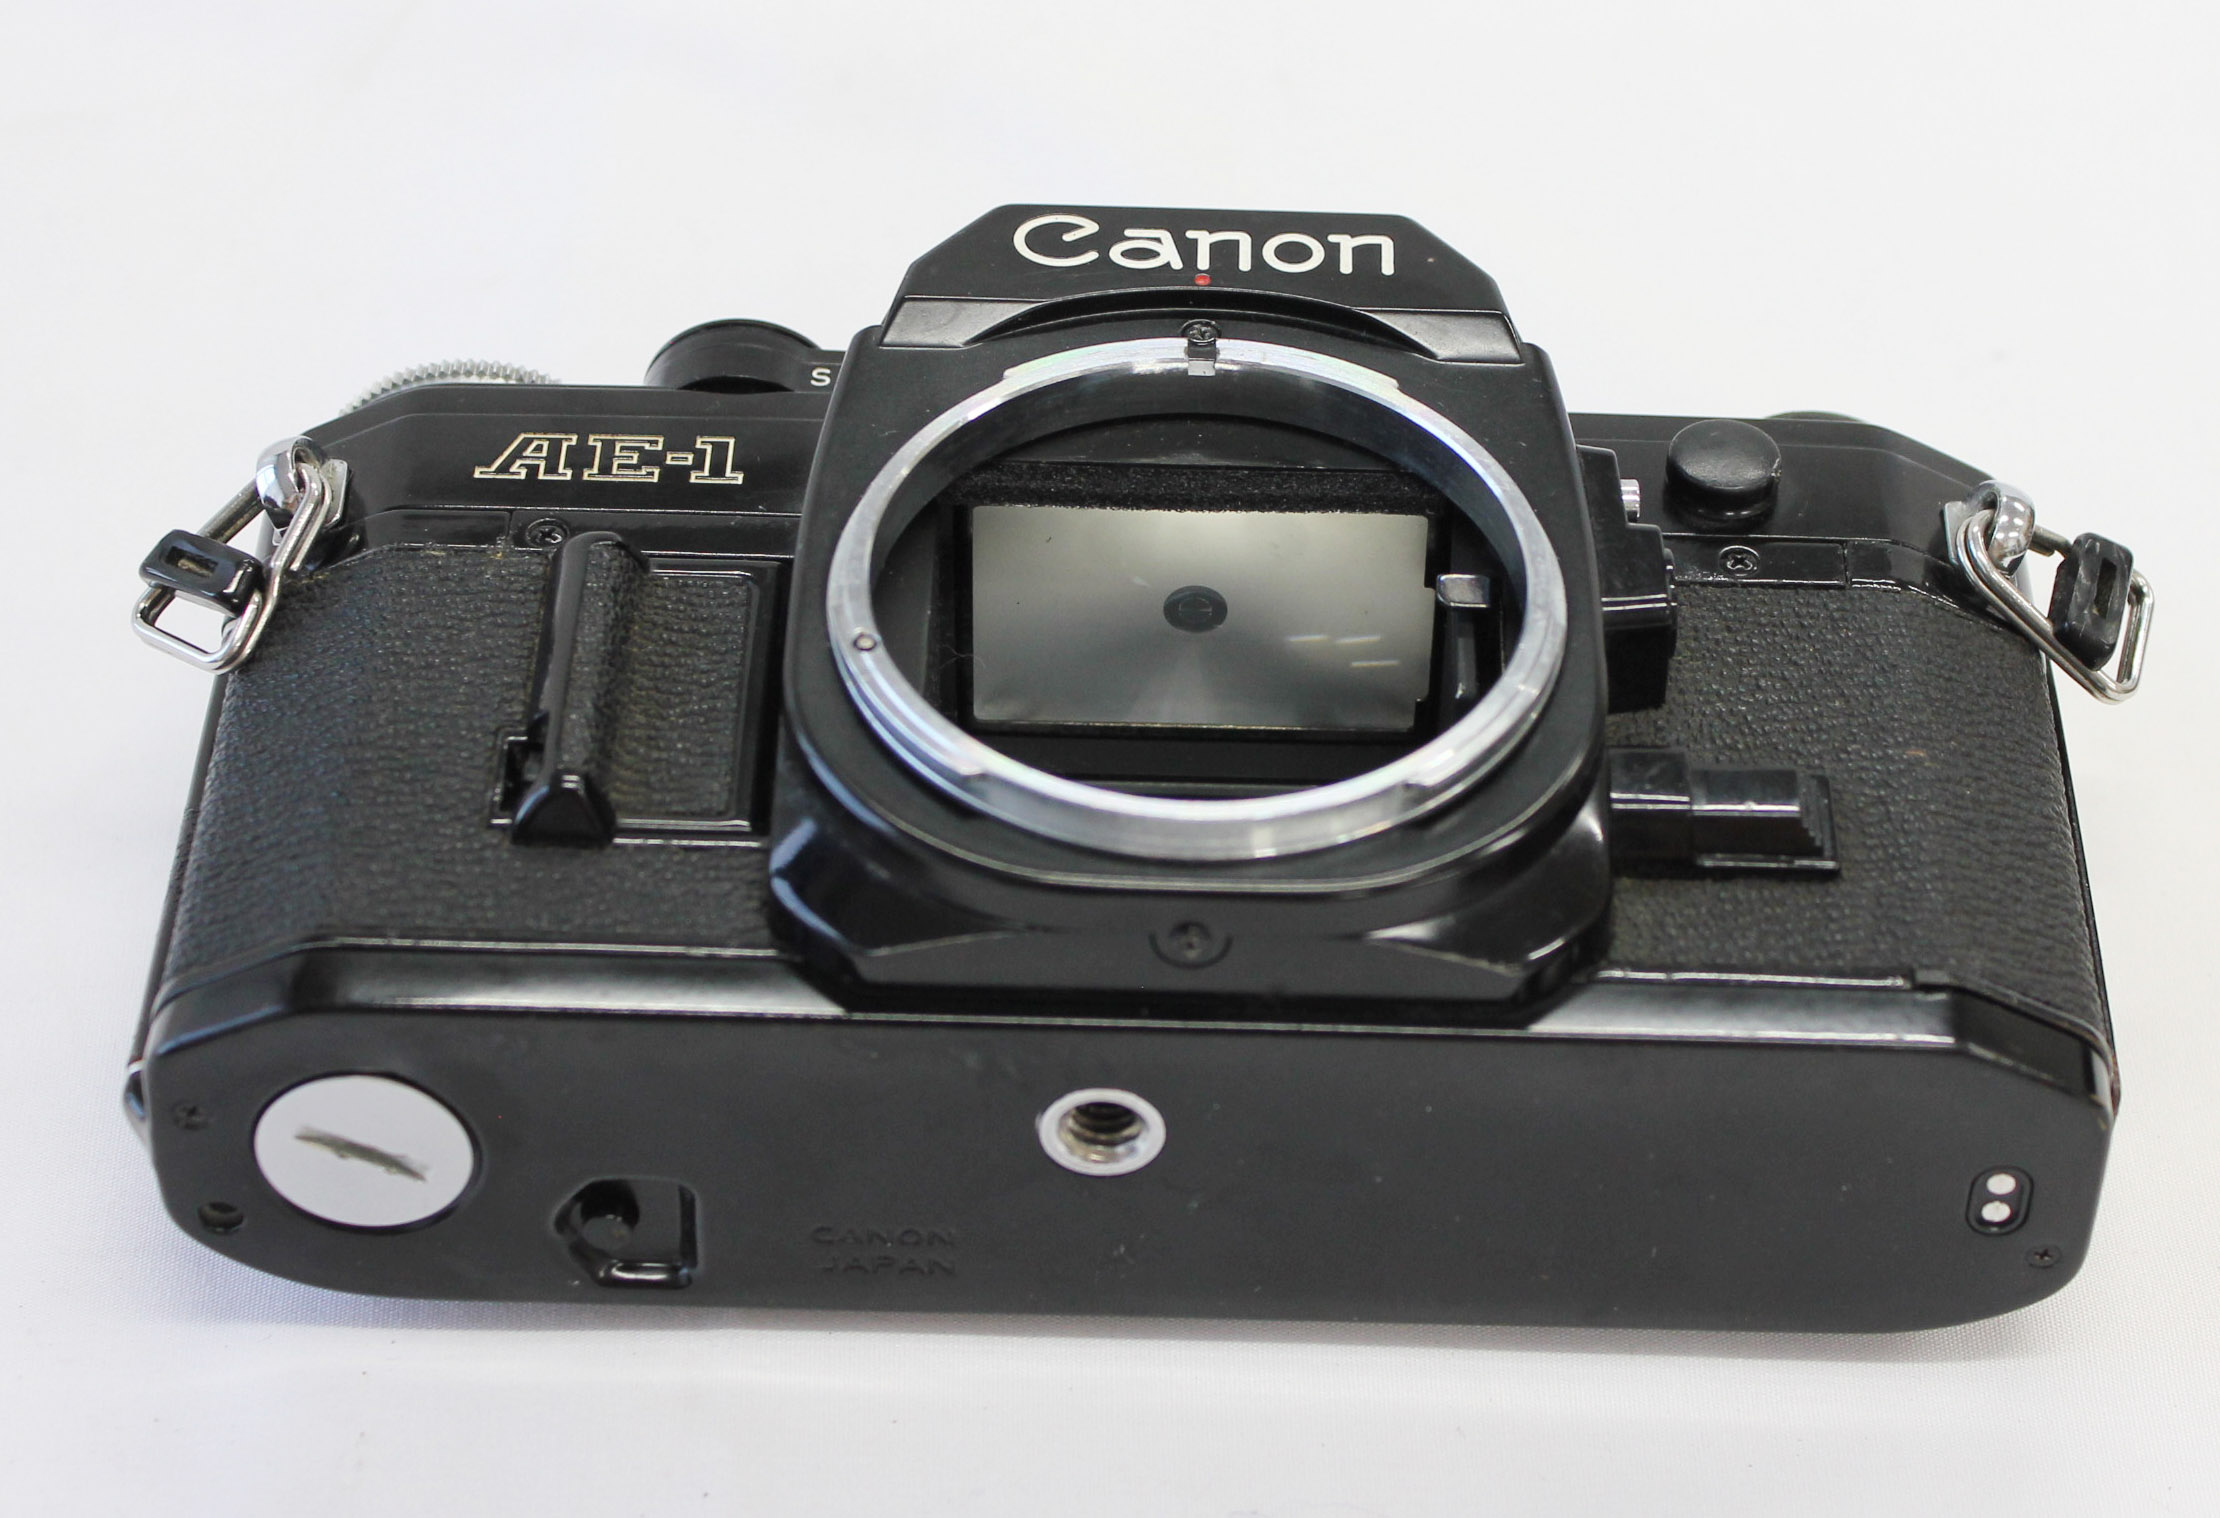 Canon AE-1 35mm SLR Film Camera Black with New FD 35-70mm F/3.5-4.5 Bonus Lens from Japan Photo 9